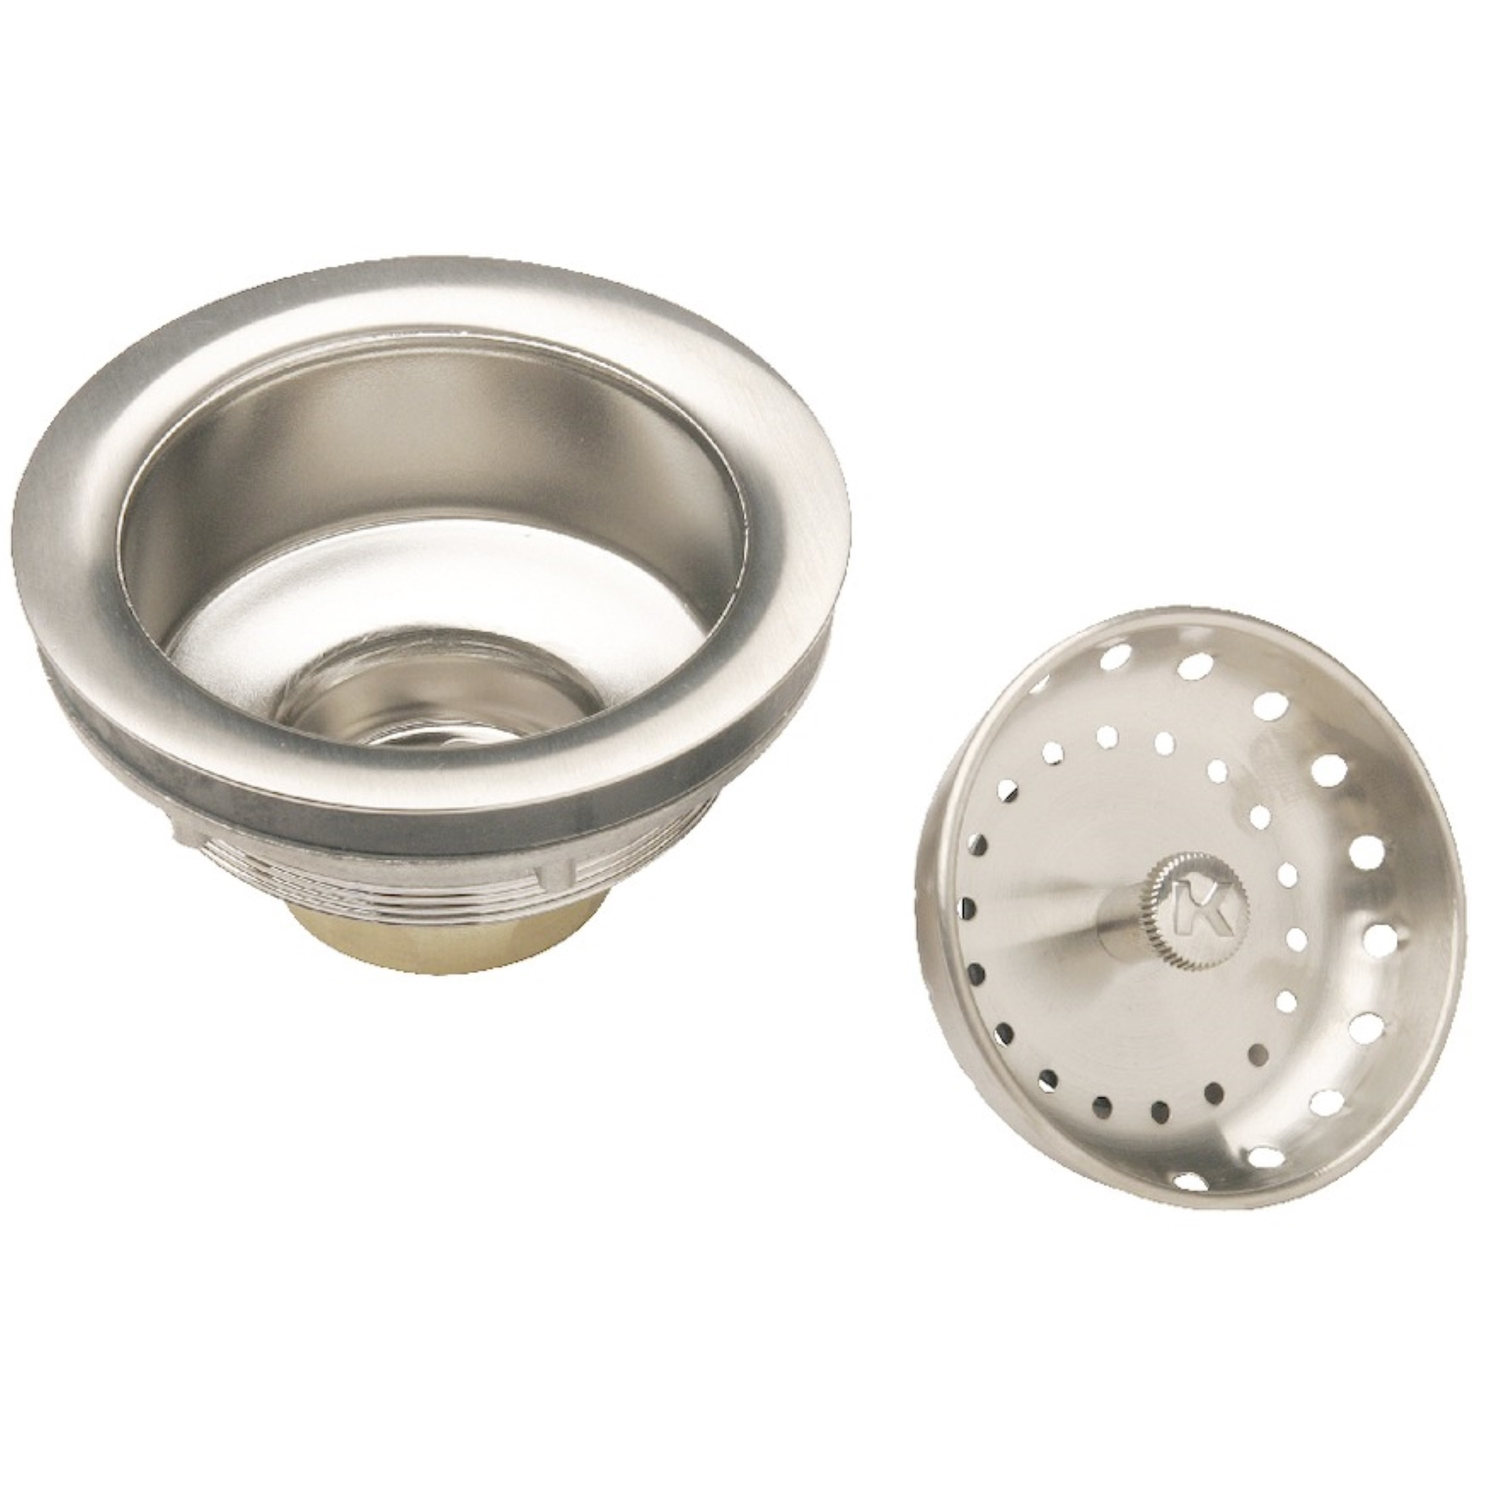 Keeney  3-1/2 in. Chrome  Brass  Sink Strainer